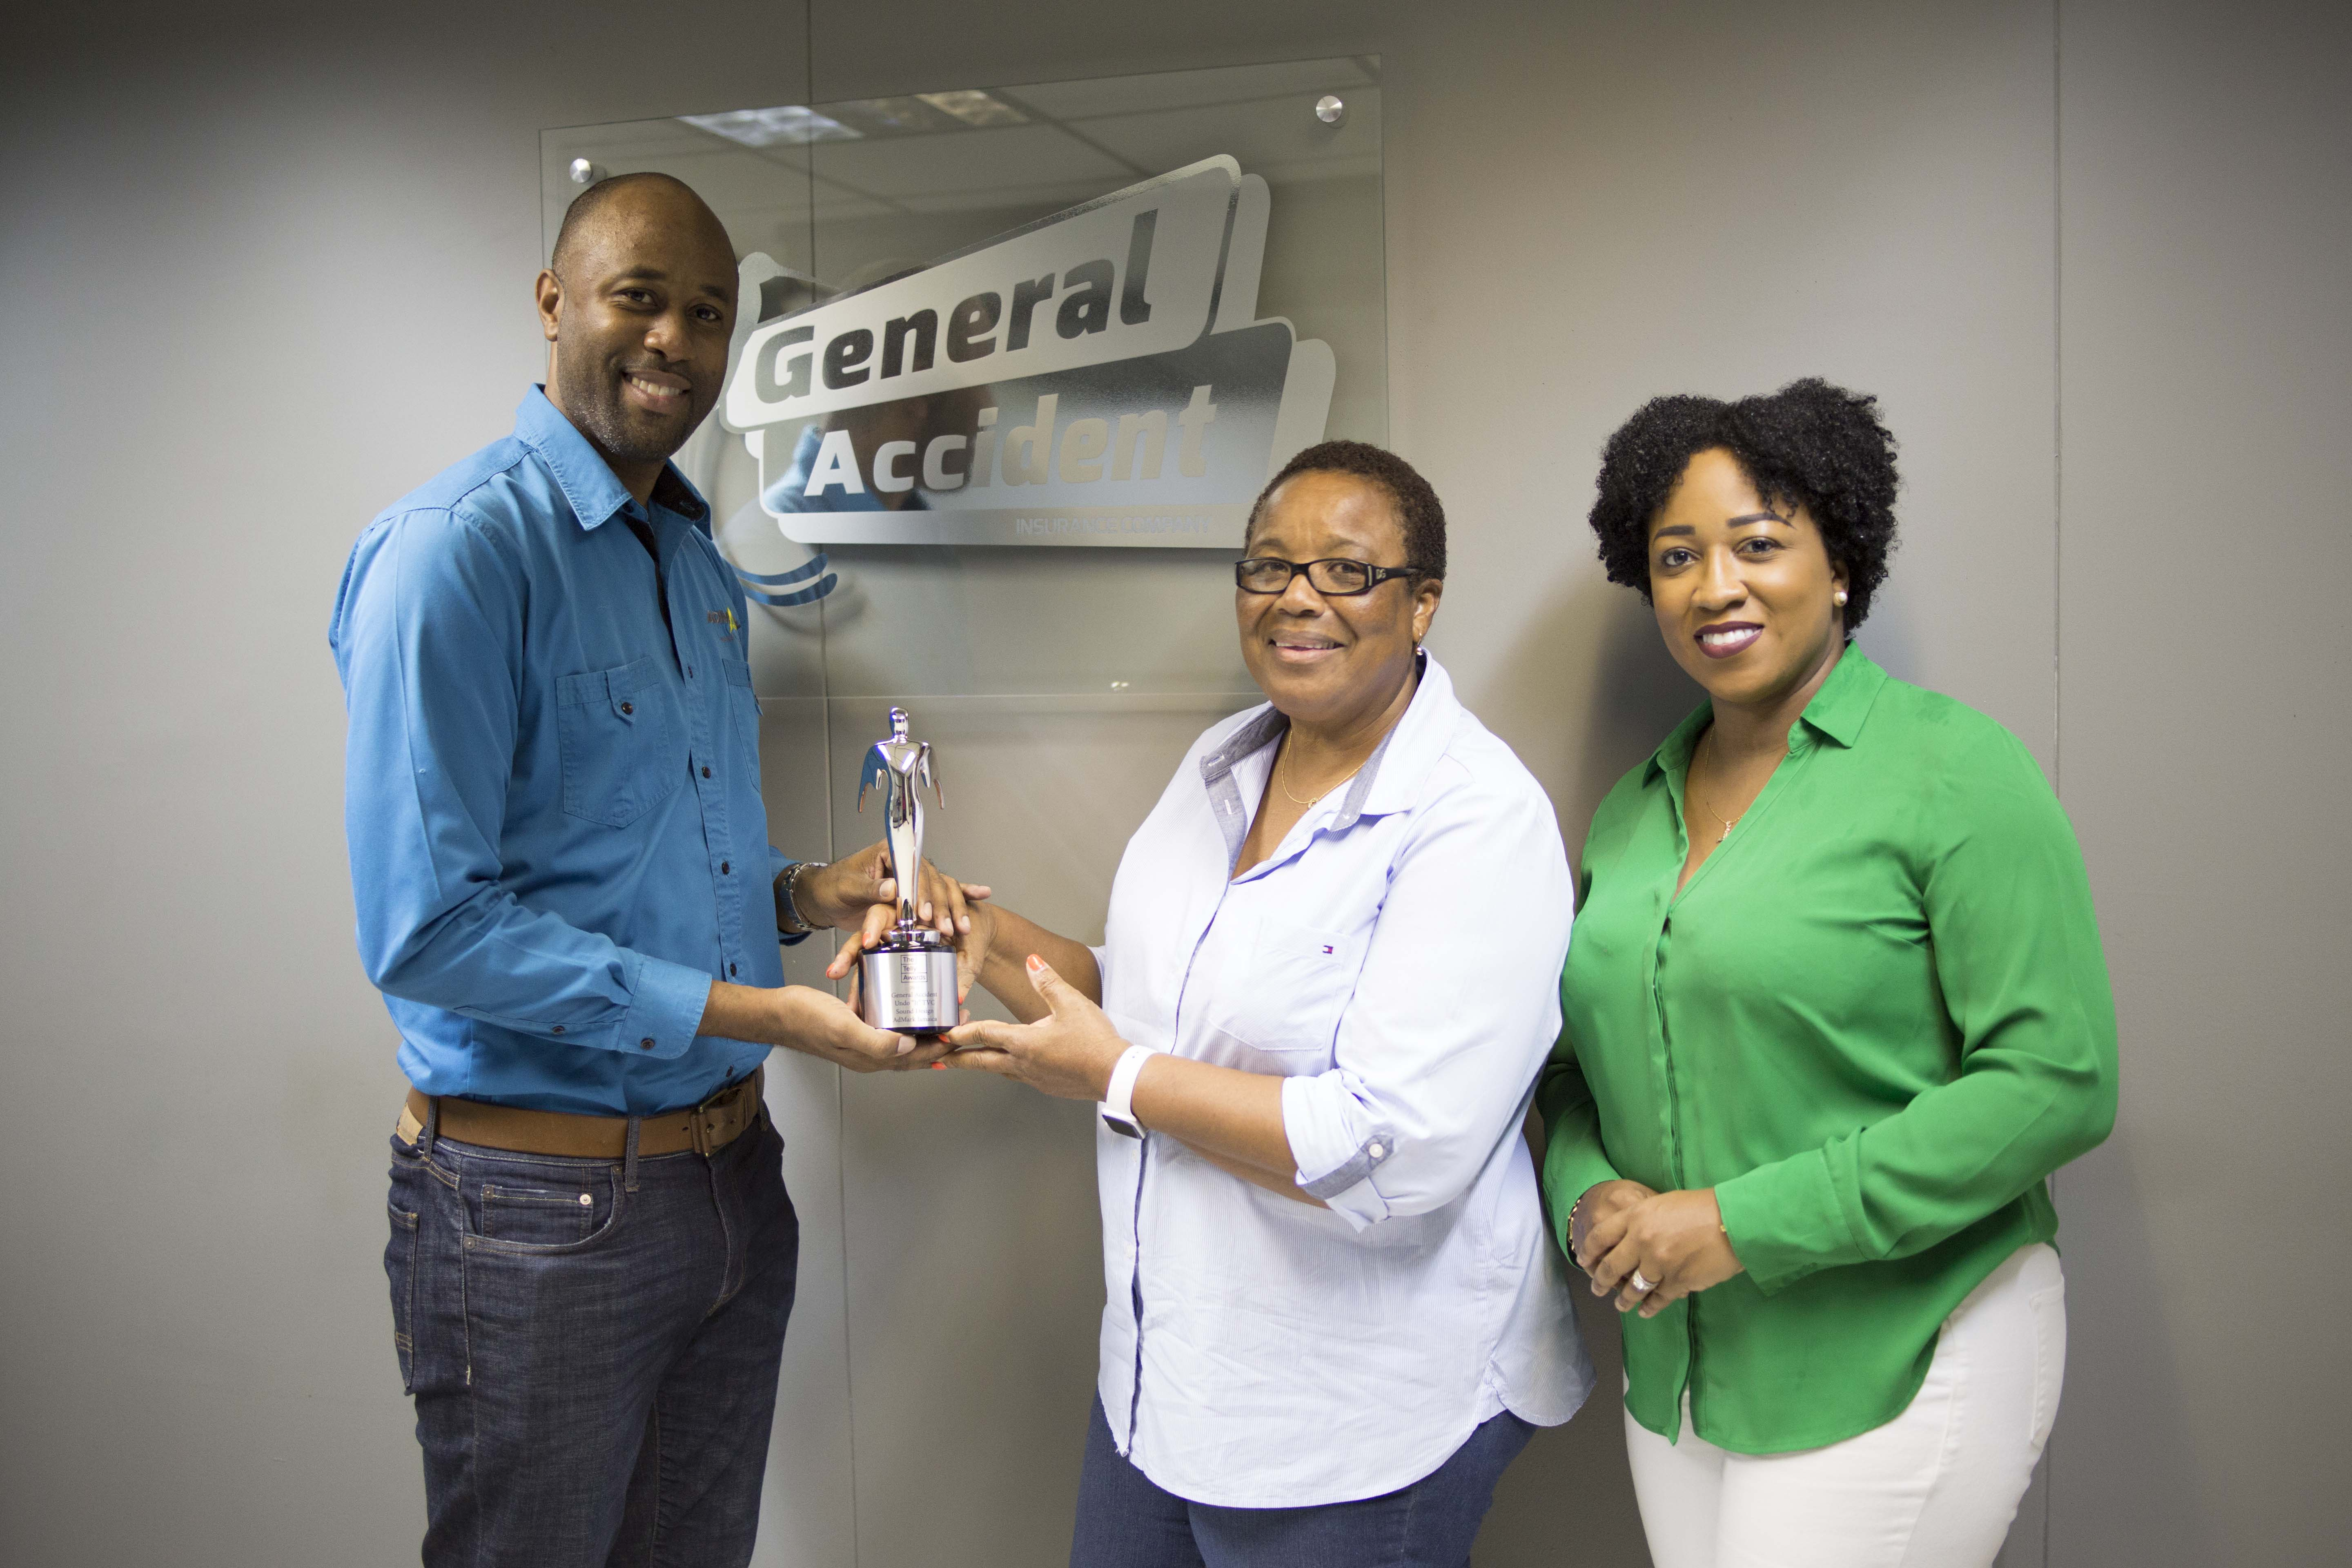 AdMark, Silver Telly Award, General Accident Insurance